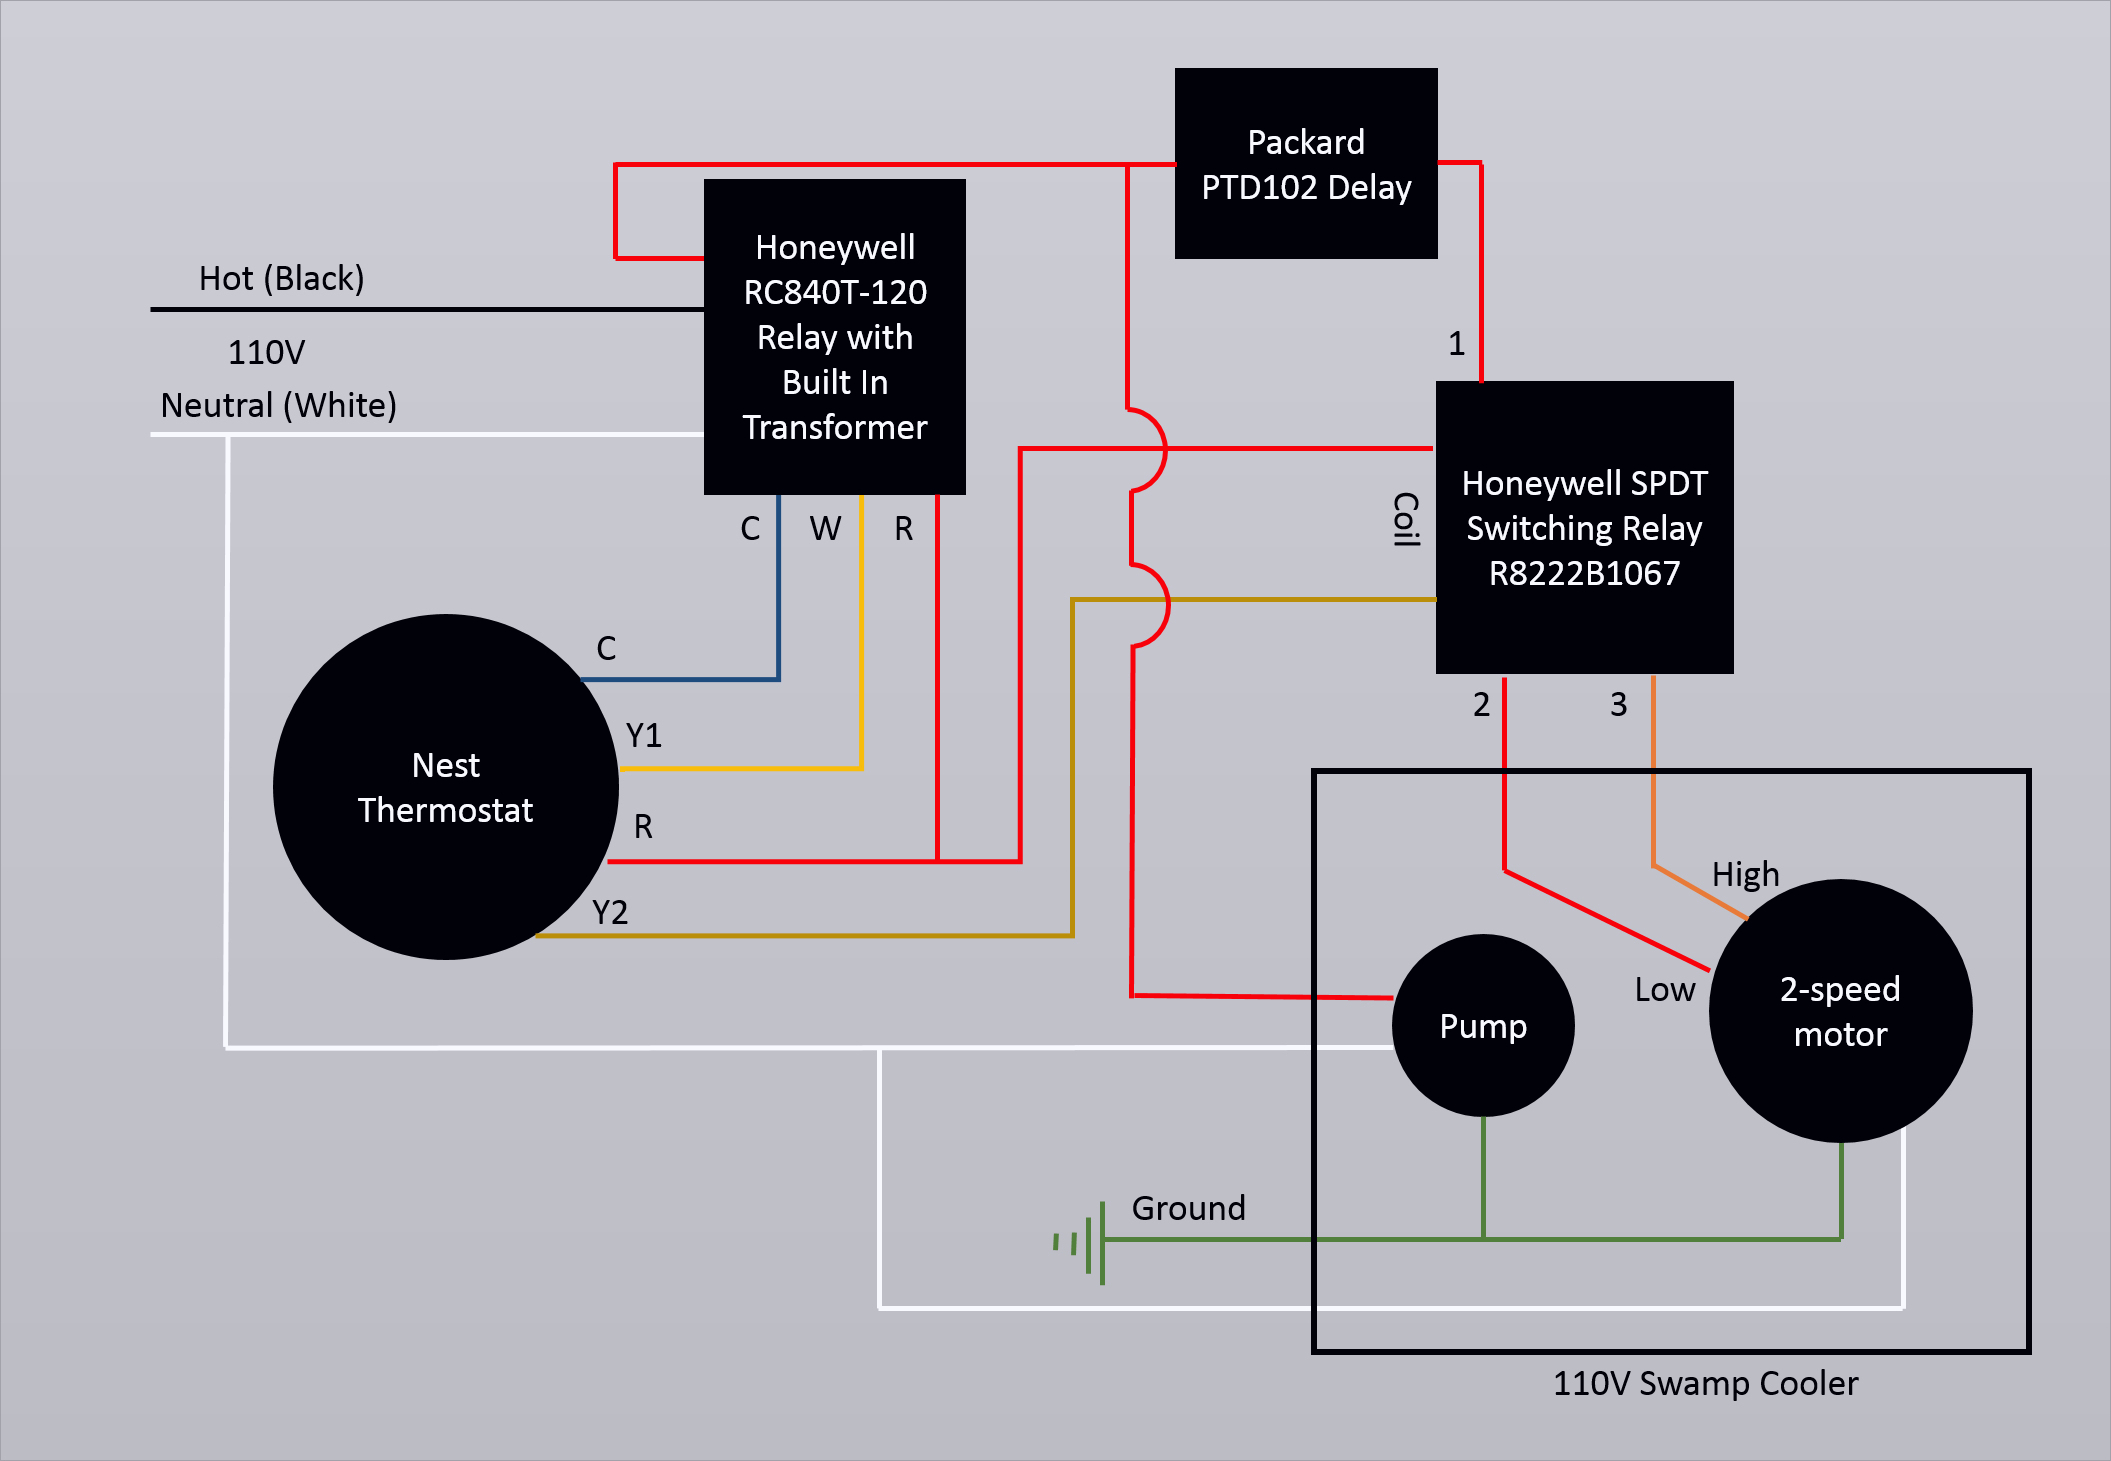 wiring diagram how to hookup as nest thermostat to a humidifier